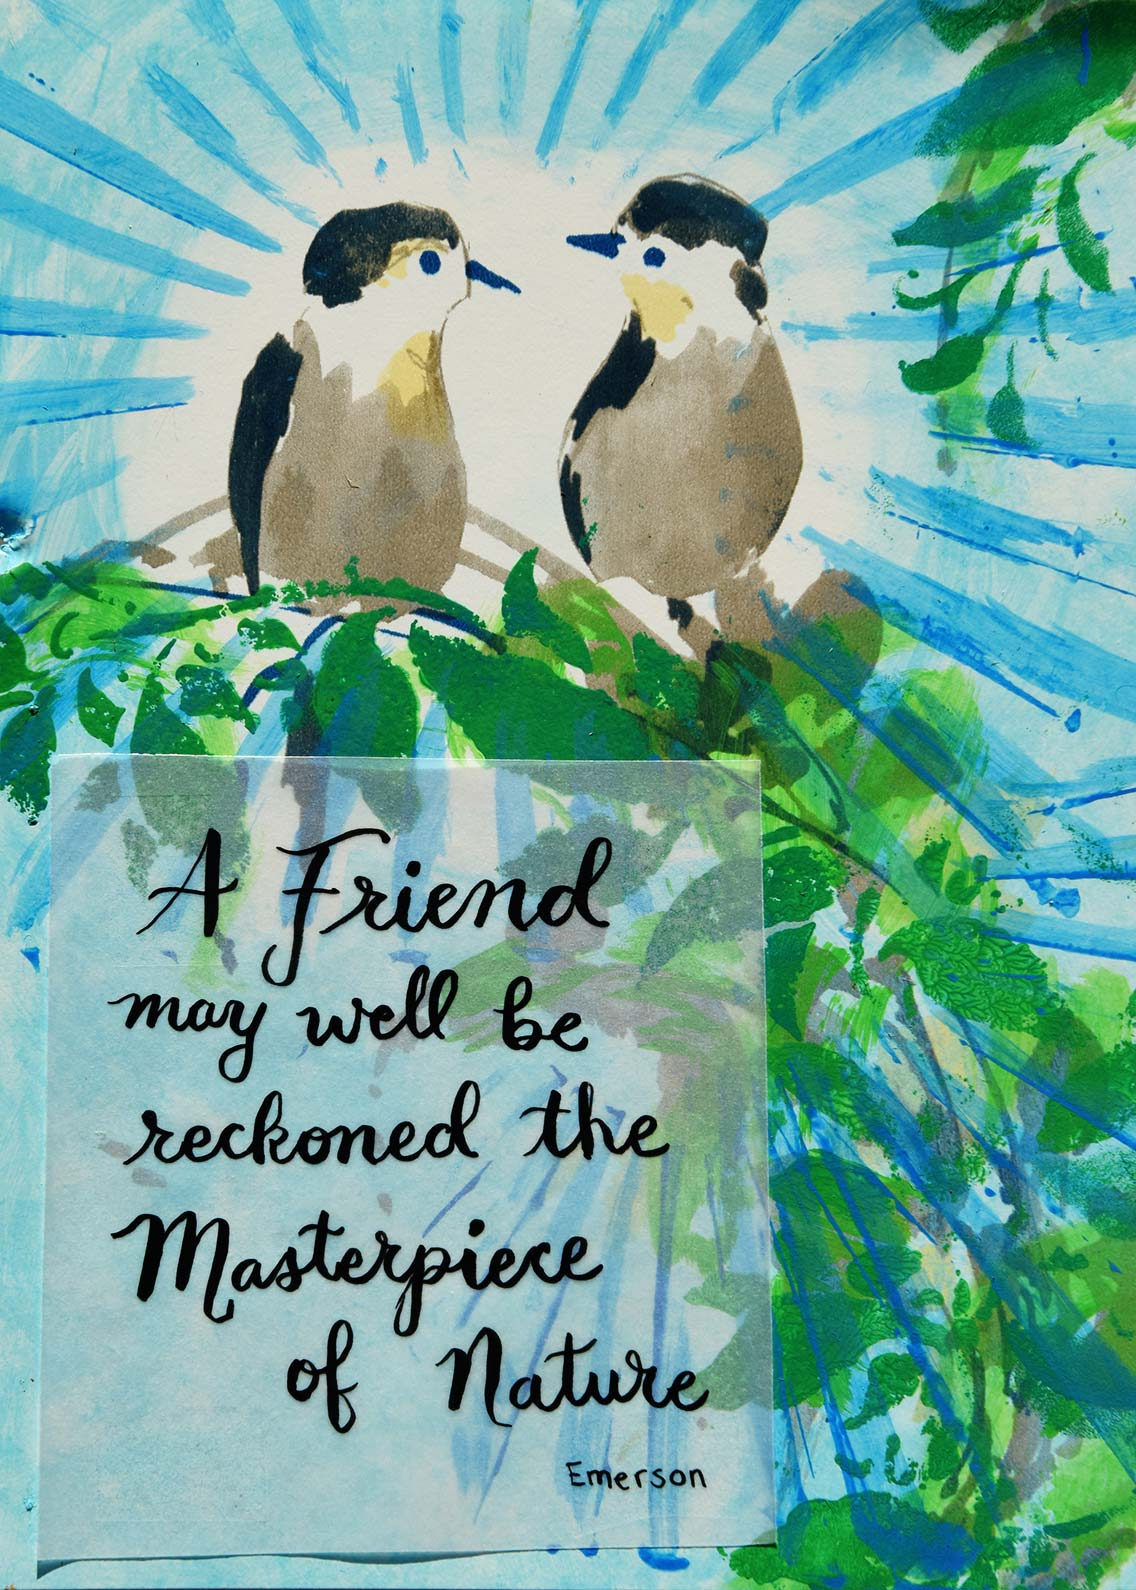 A friend may well be reckoned a masterpiece of nature Emerson Quote by Jeanne Selep